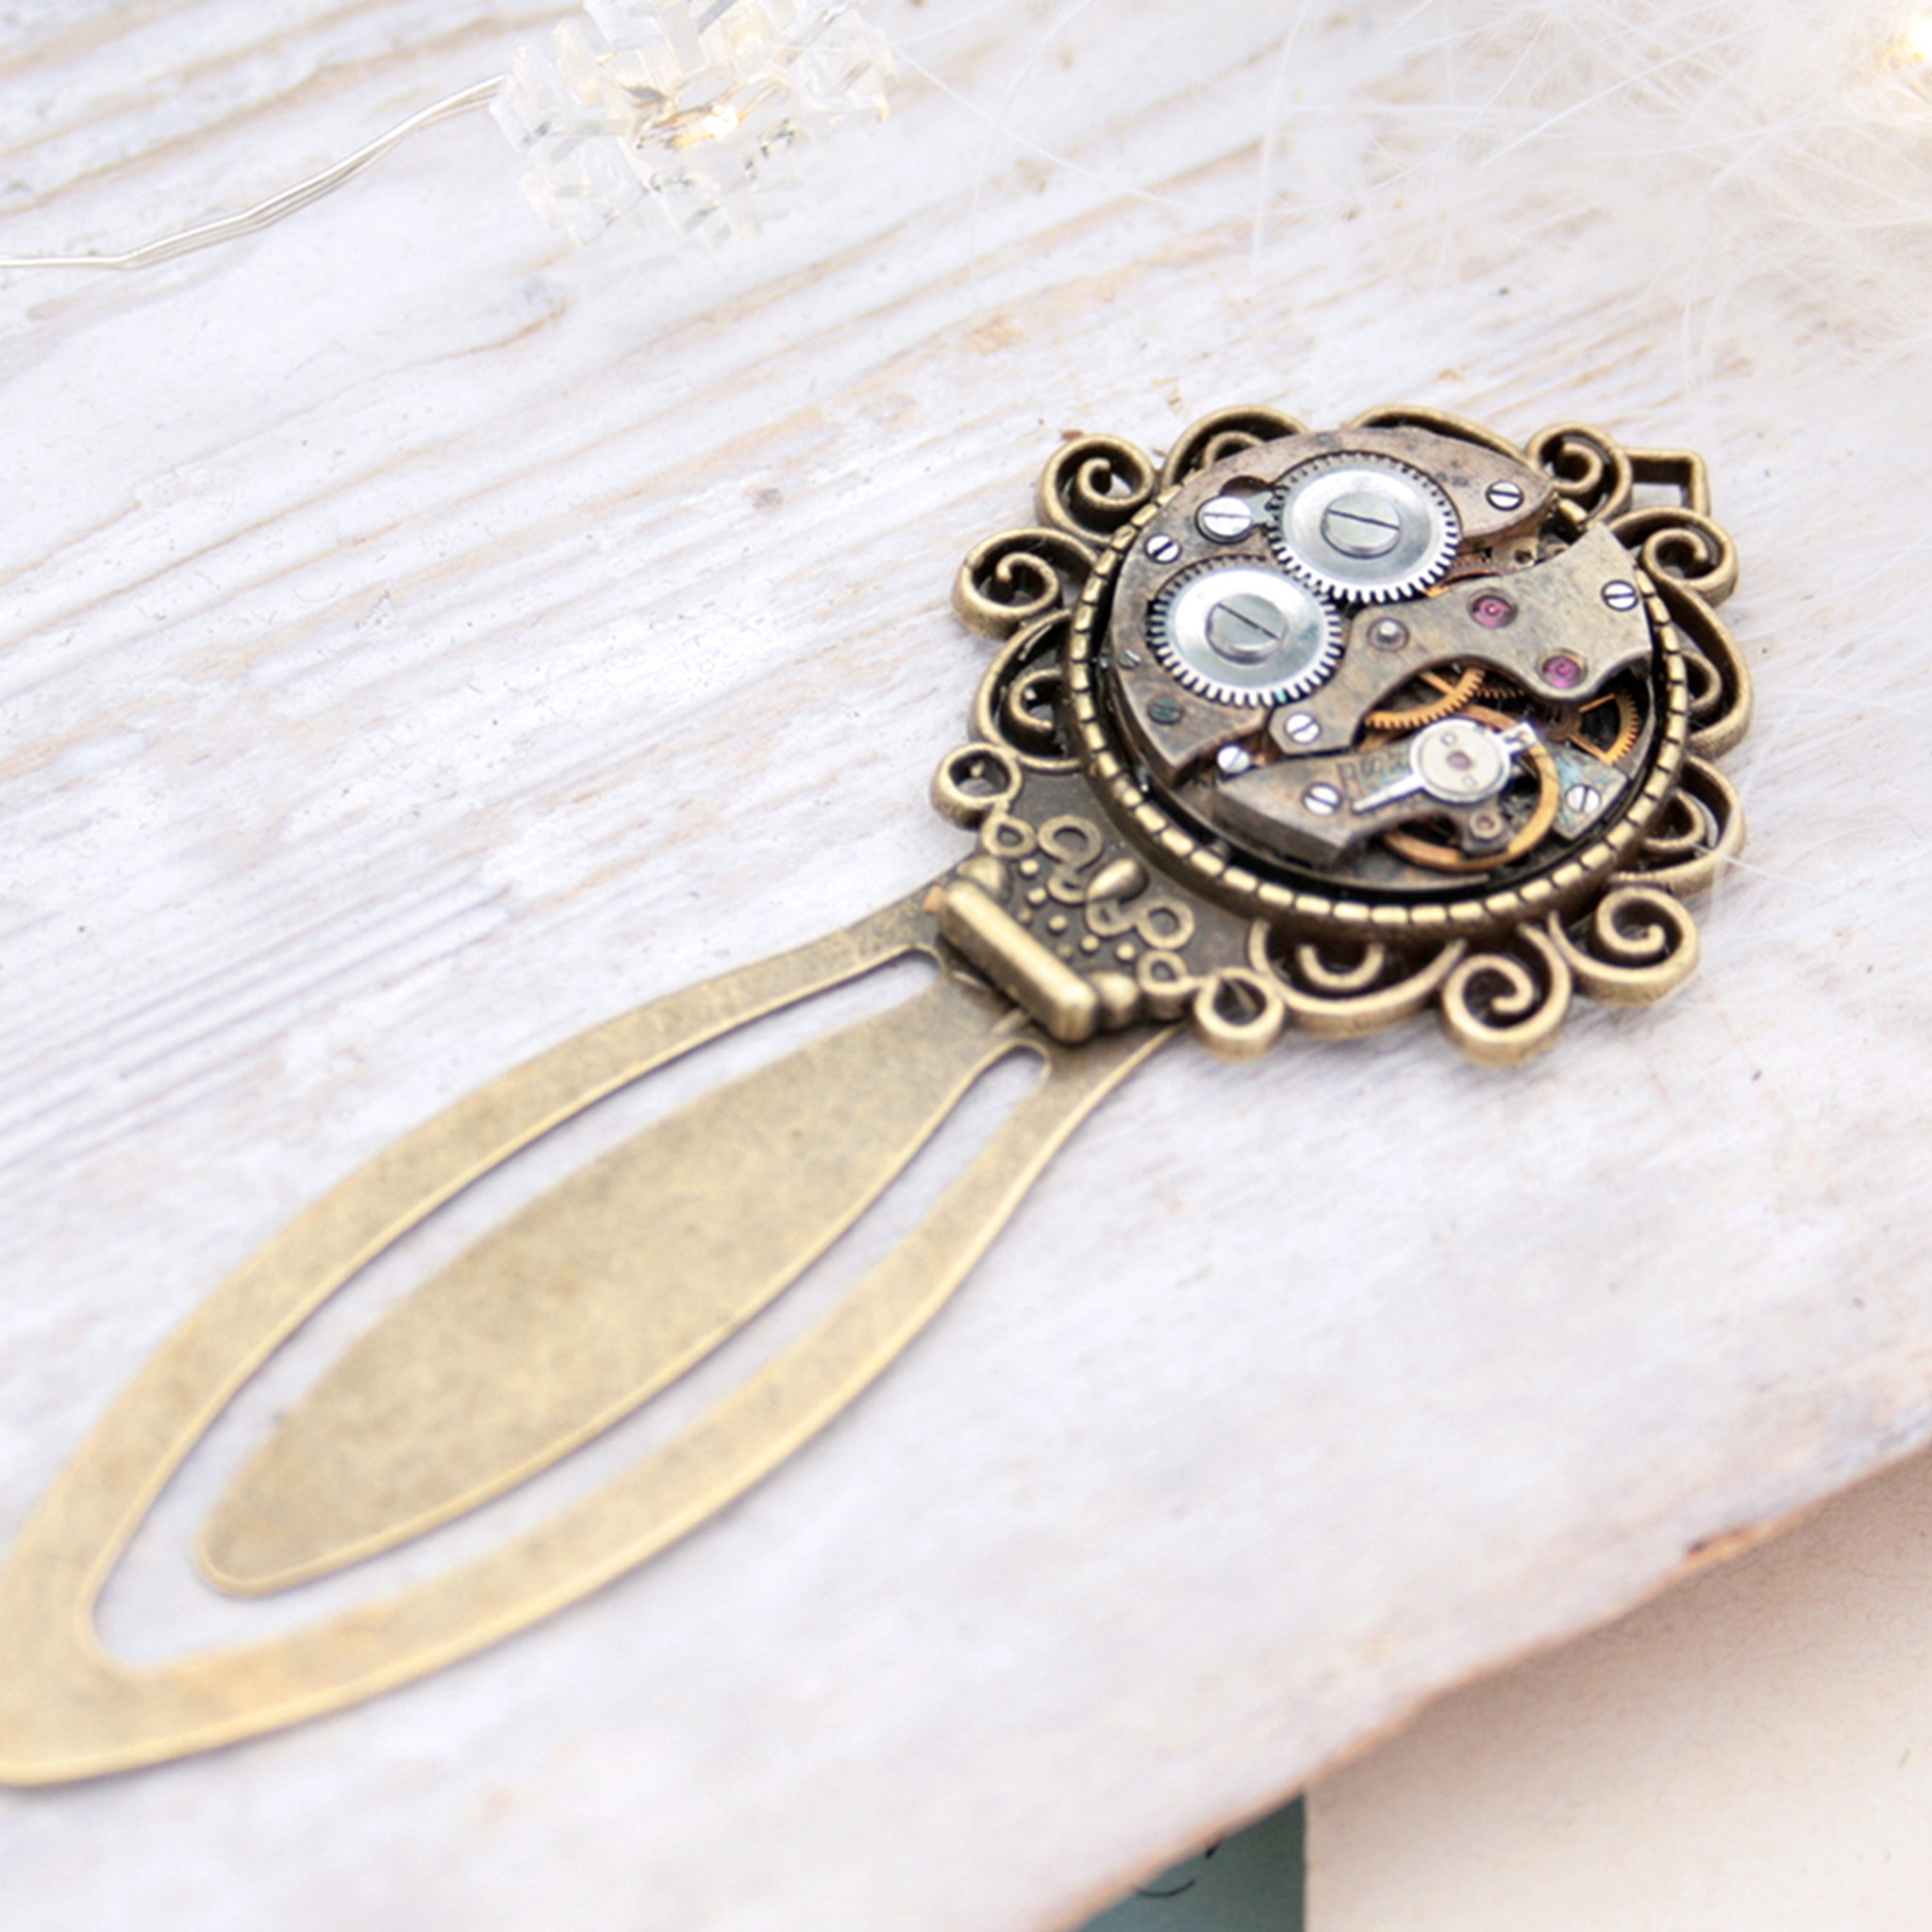 Unique Bookmark made of steampunk watch movement